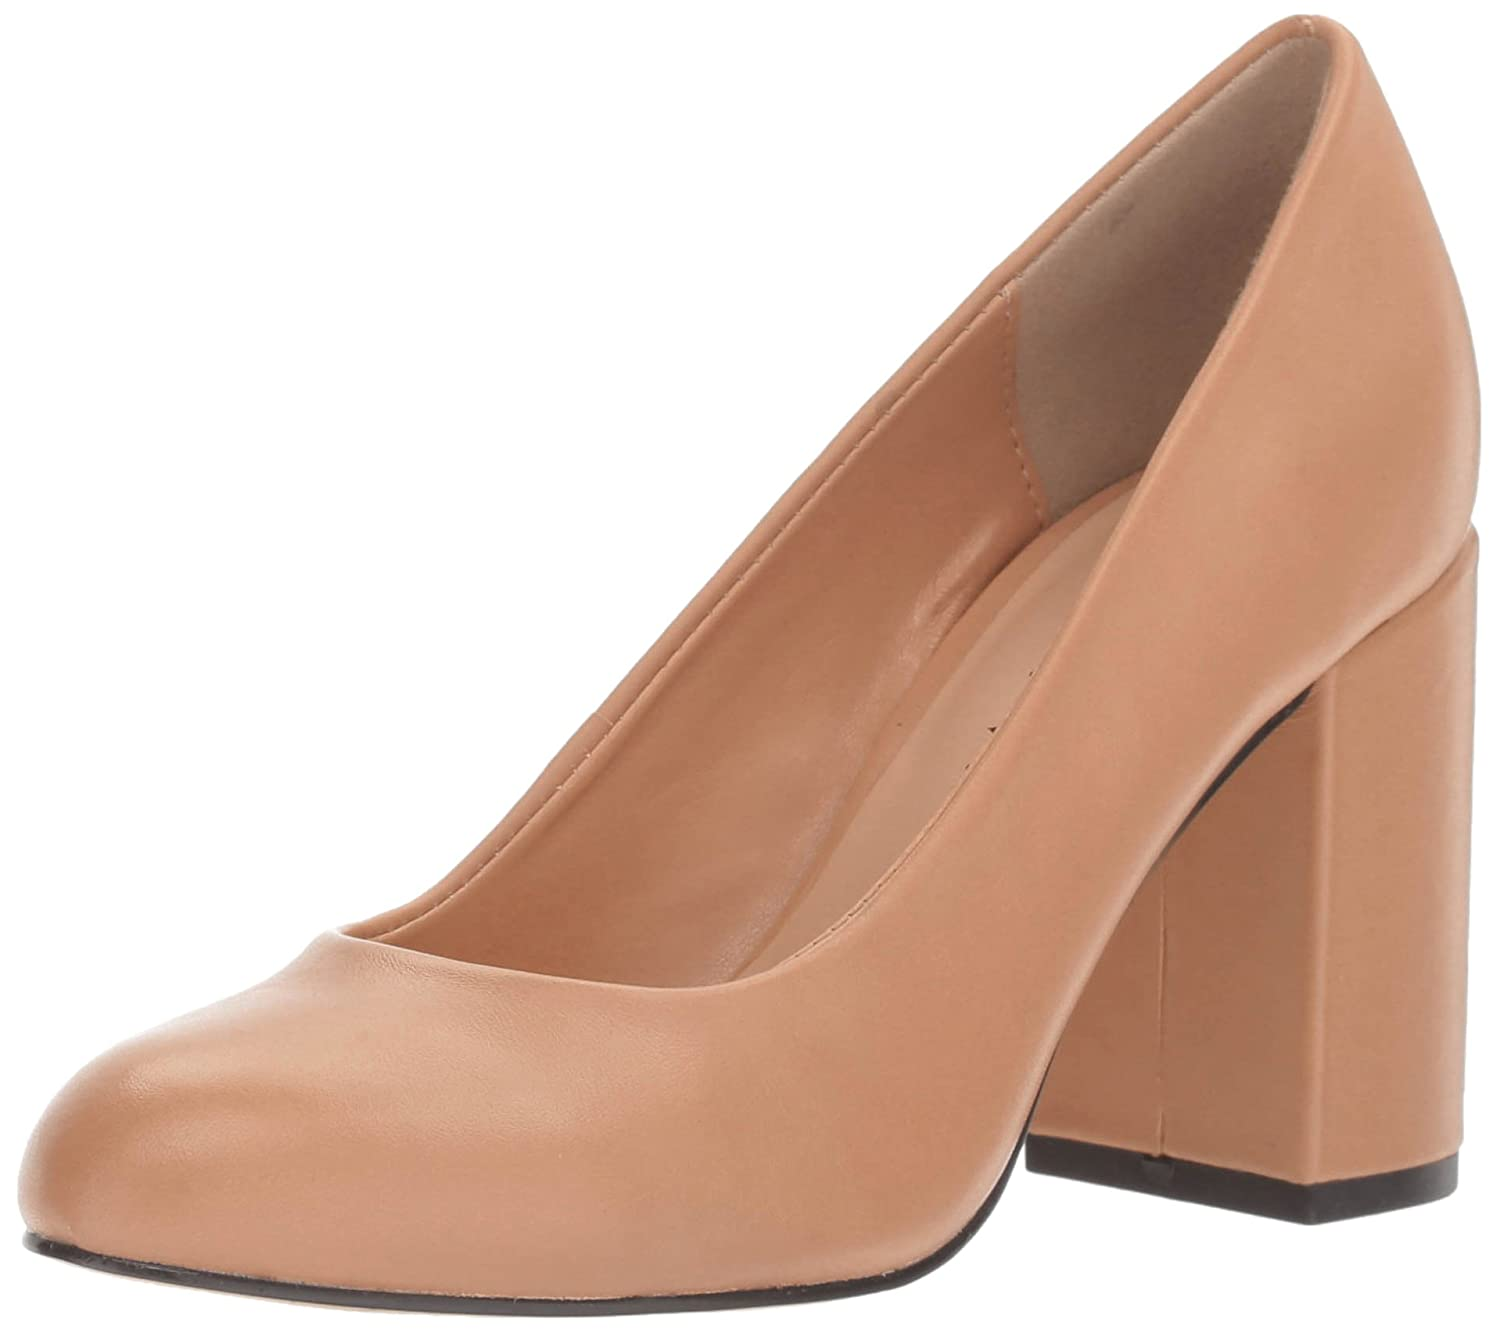 Bella Vita Women's Nara Dress Pump B01NCP6CDZ 6.5 2W US|Nude